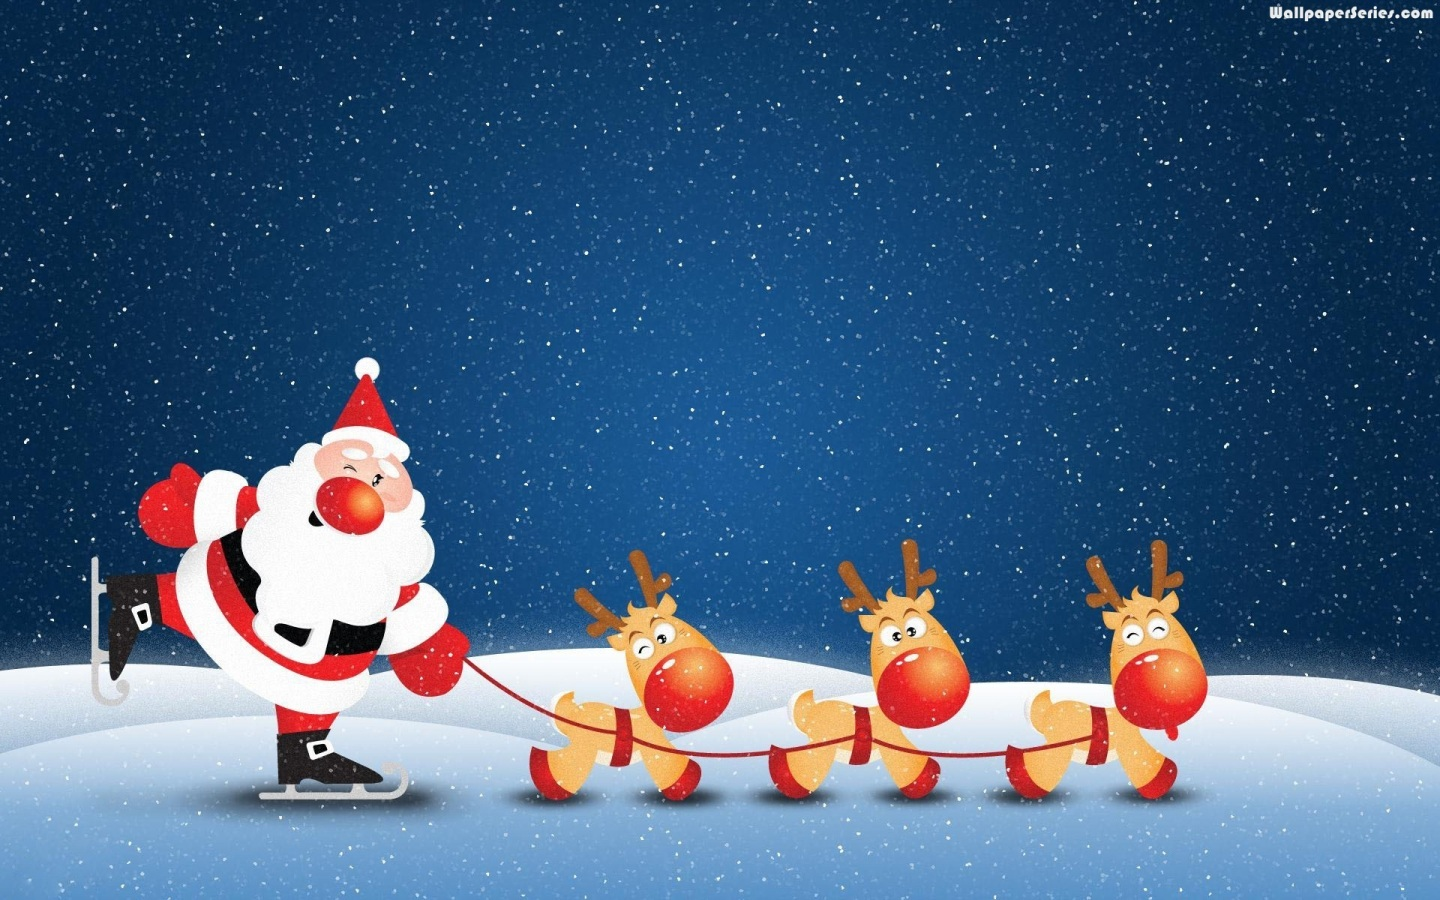 Christmas Screensaver And Wallpaper Animated Merry